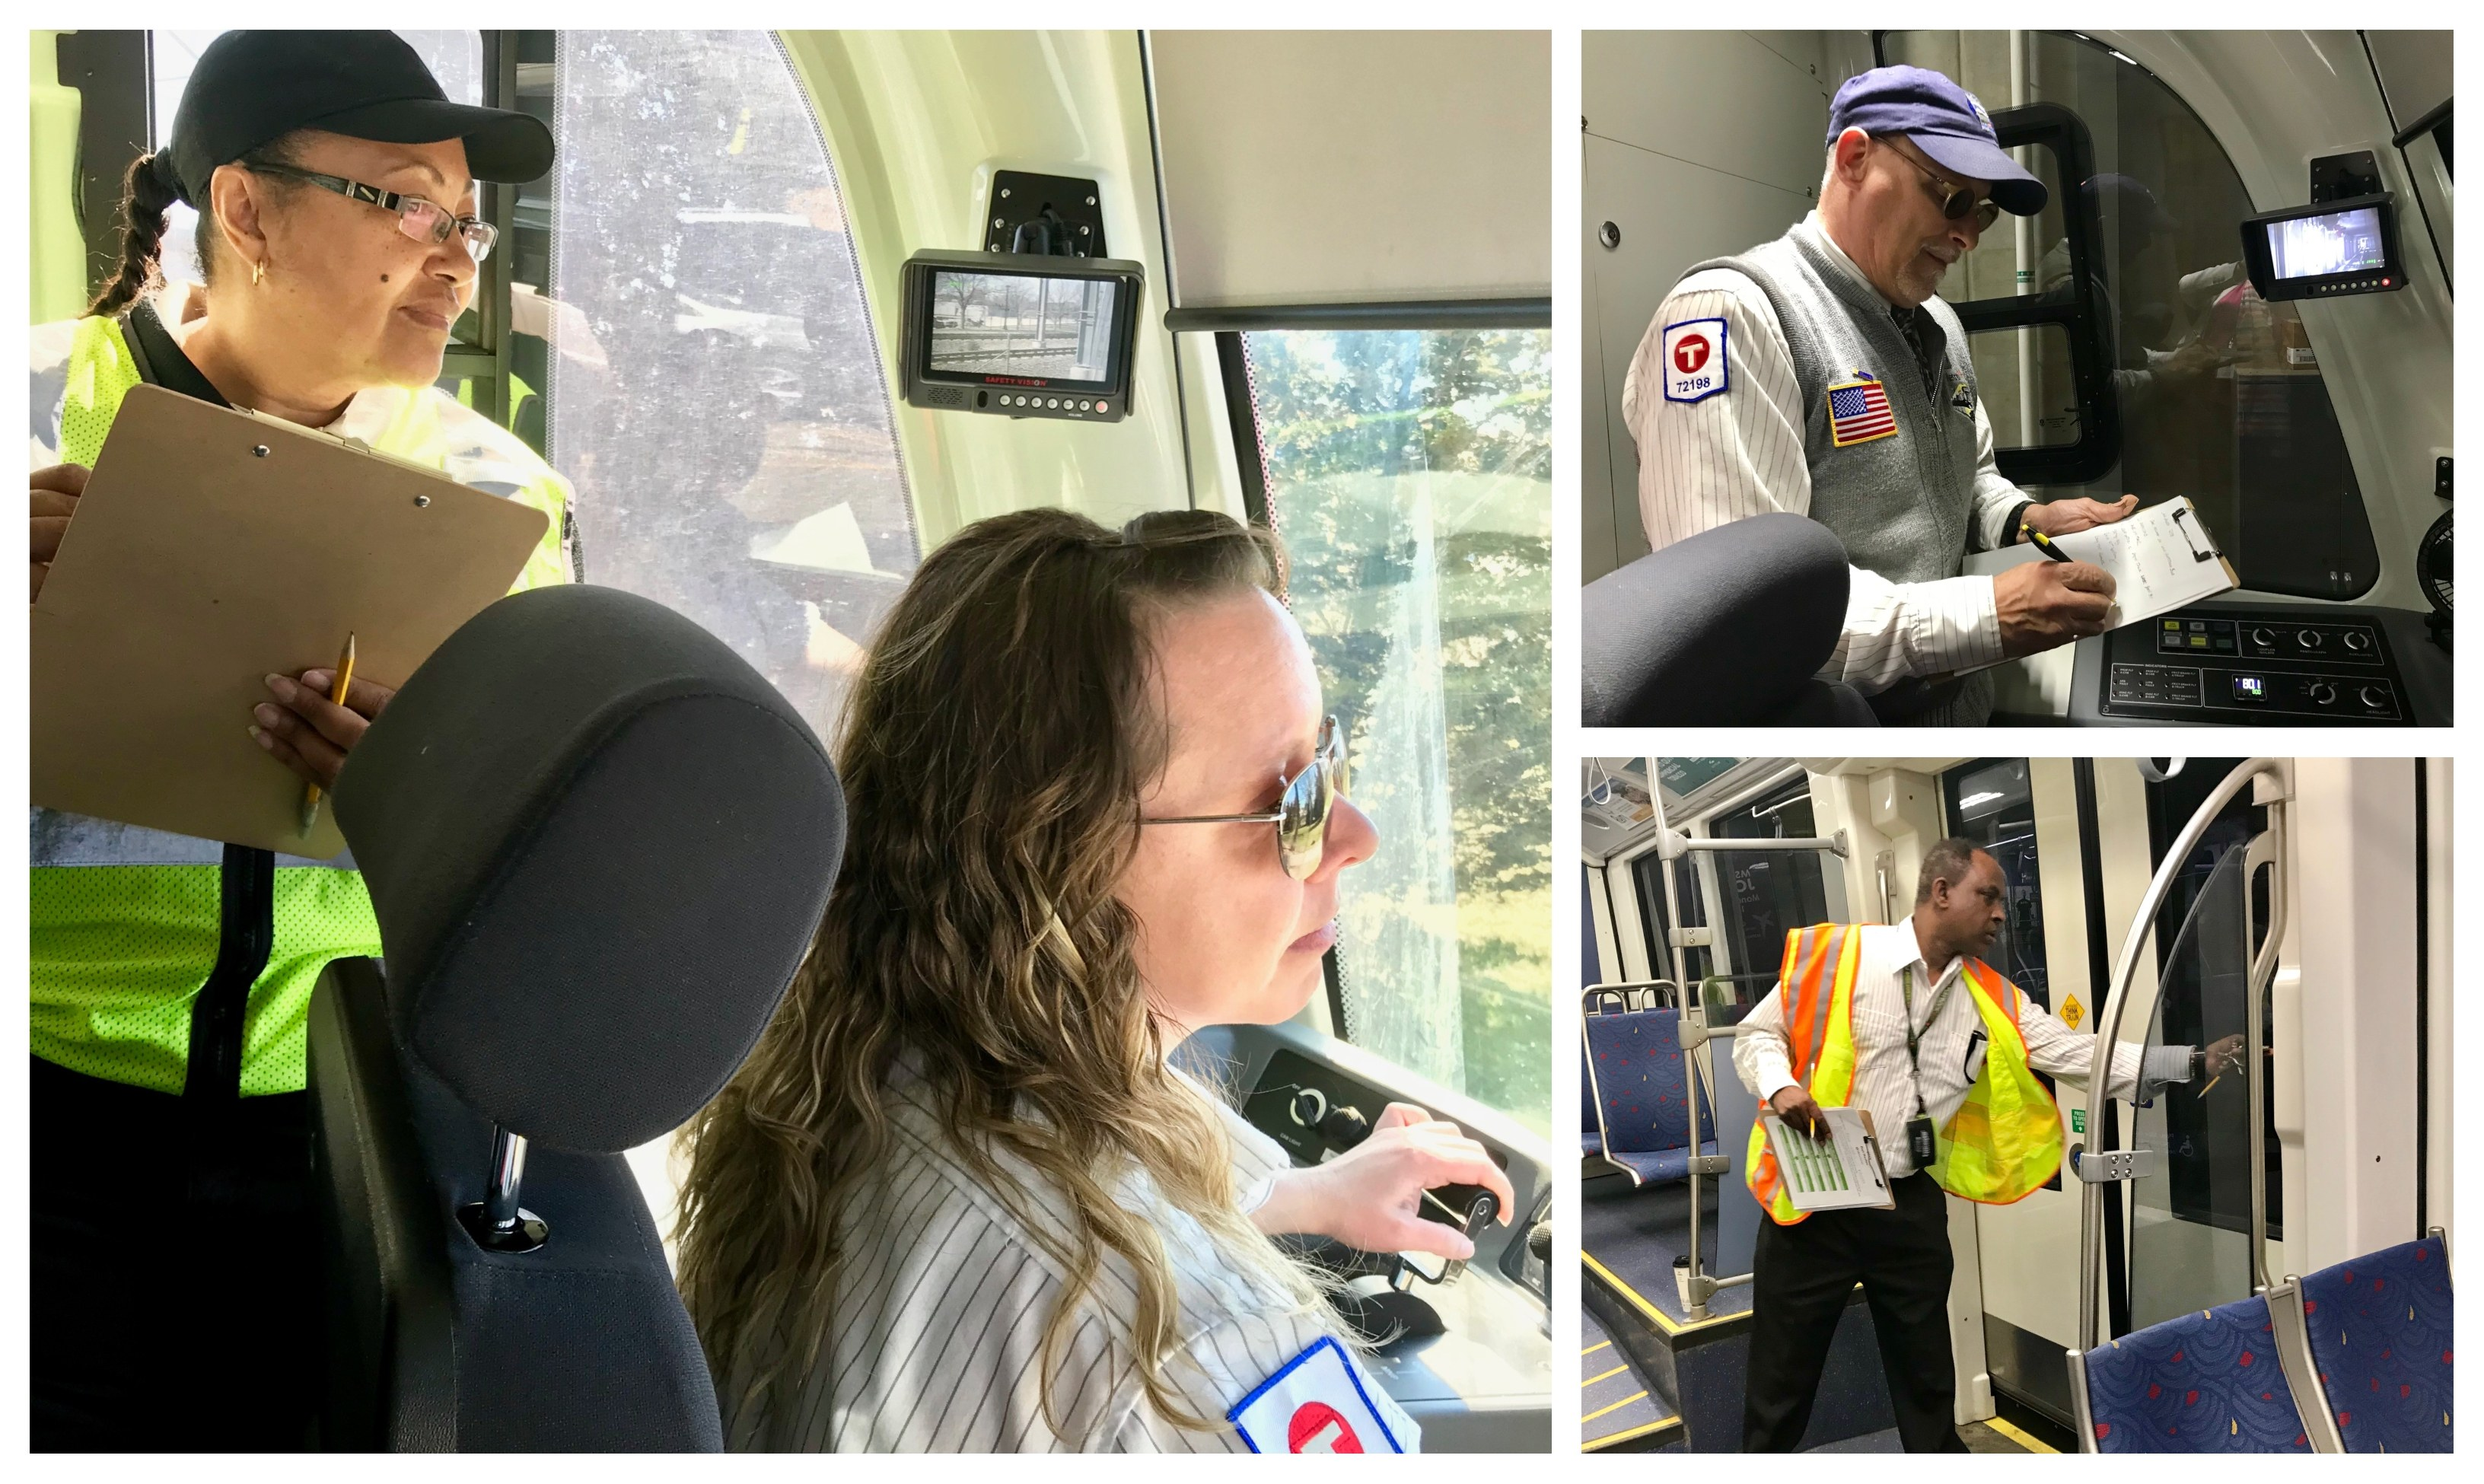 Rail Supervisor Connie Skinner (top left) scores Train Operator Sarah Gibson during Metro Transit's 2019 Rail Rodeo. Train Operators Joe Bretto (top right) and Mose Mahir (bottom right) perform pre-trip inspections during the contest.